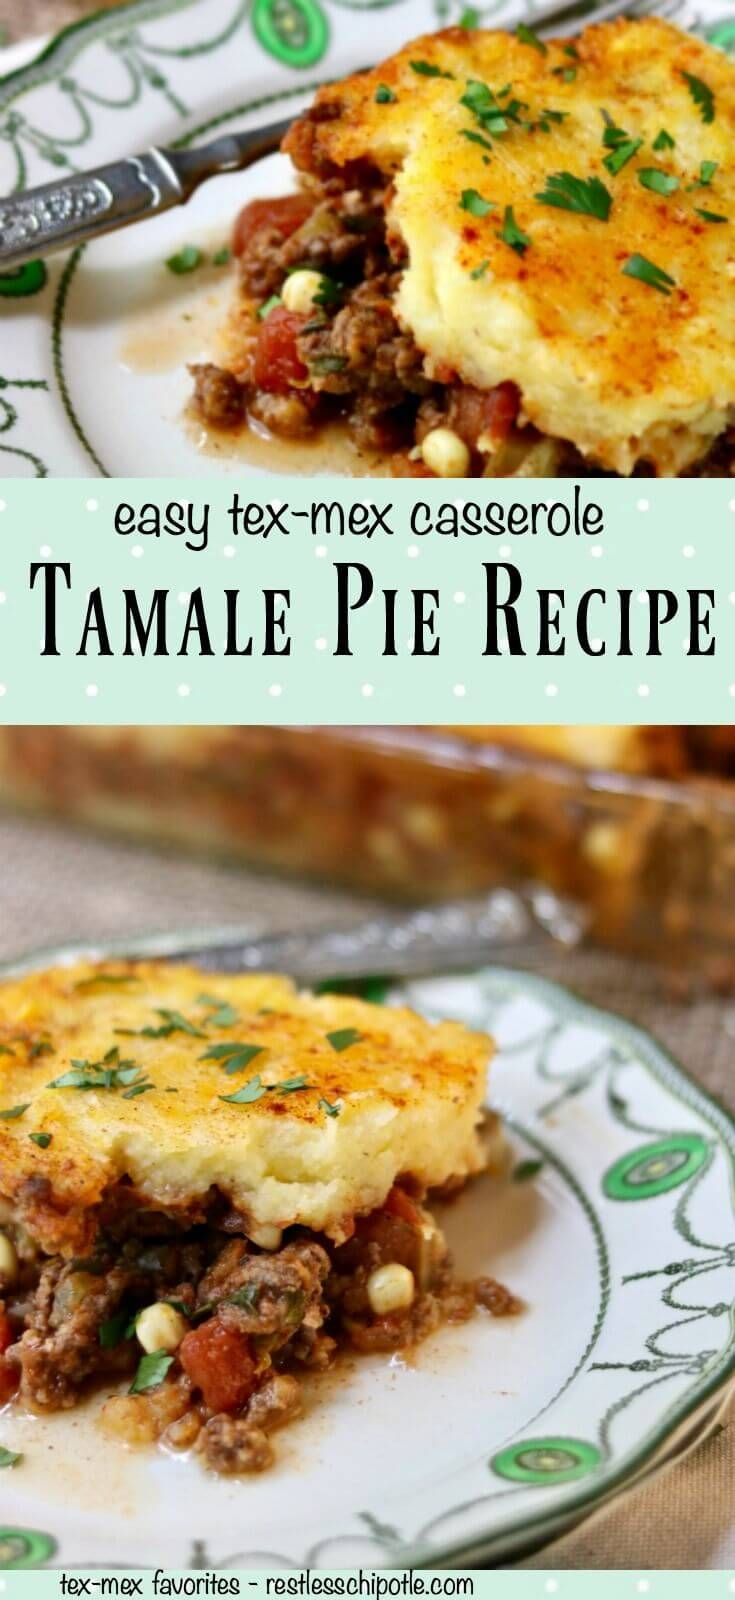 This easy Tex-Mex Tamale Pie recipe has been a favorite of families everywhere for decades - providing a budget friendly comfort food to busy home cooks. From RestlessChipotle.com via @Marye at Restless Chipotle